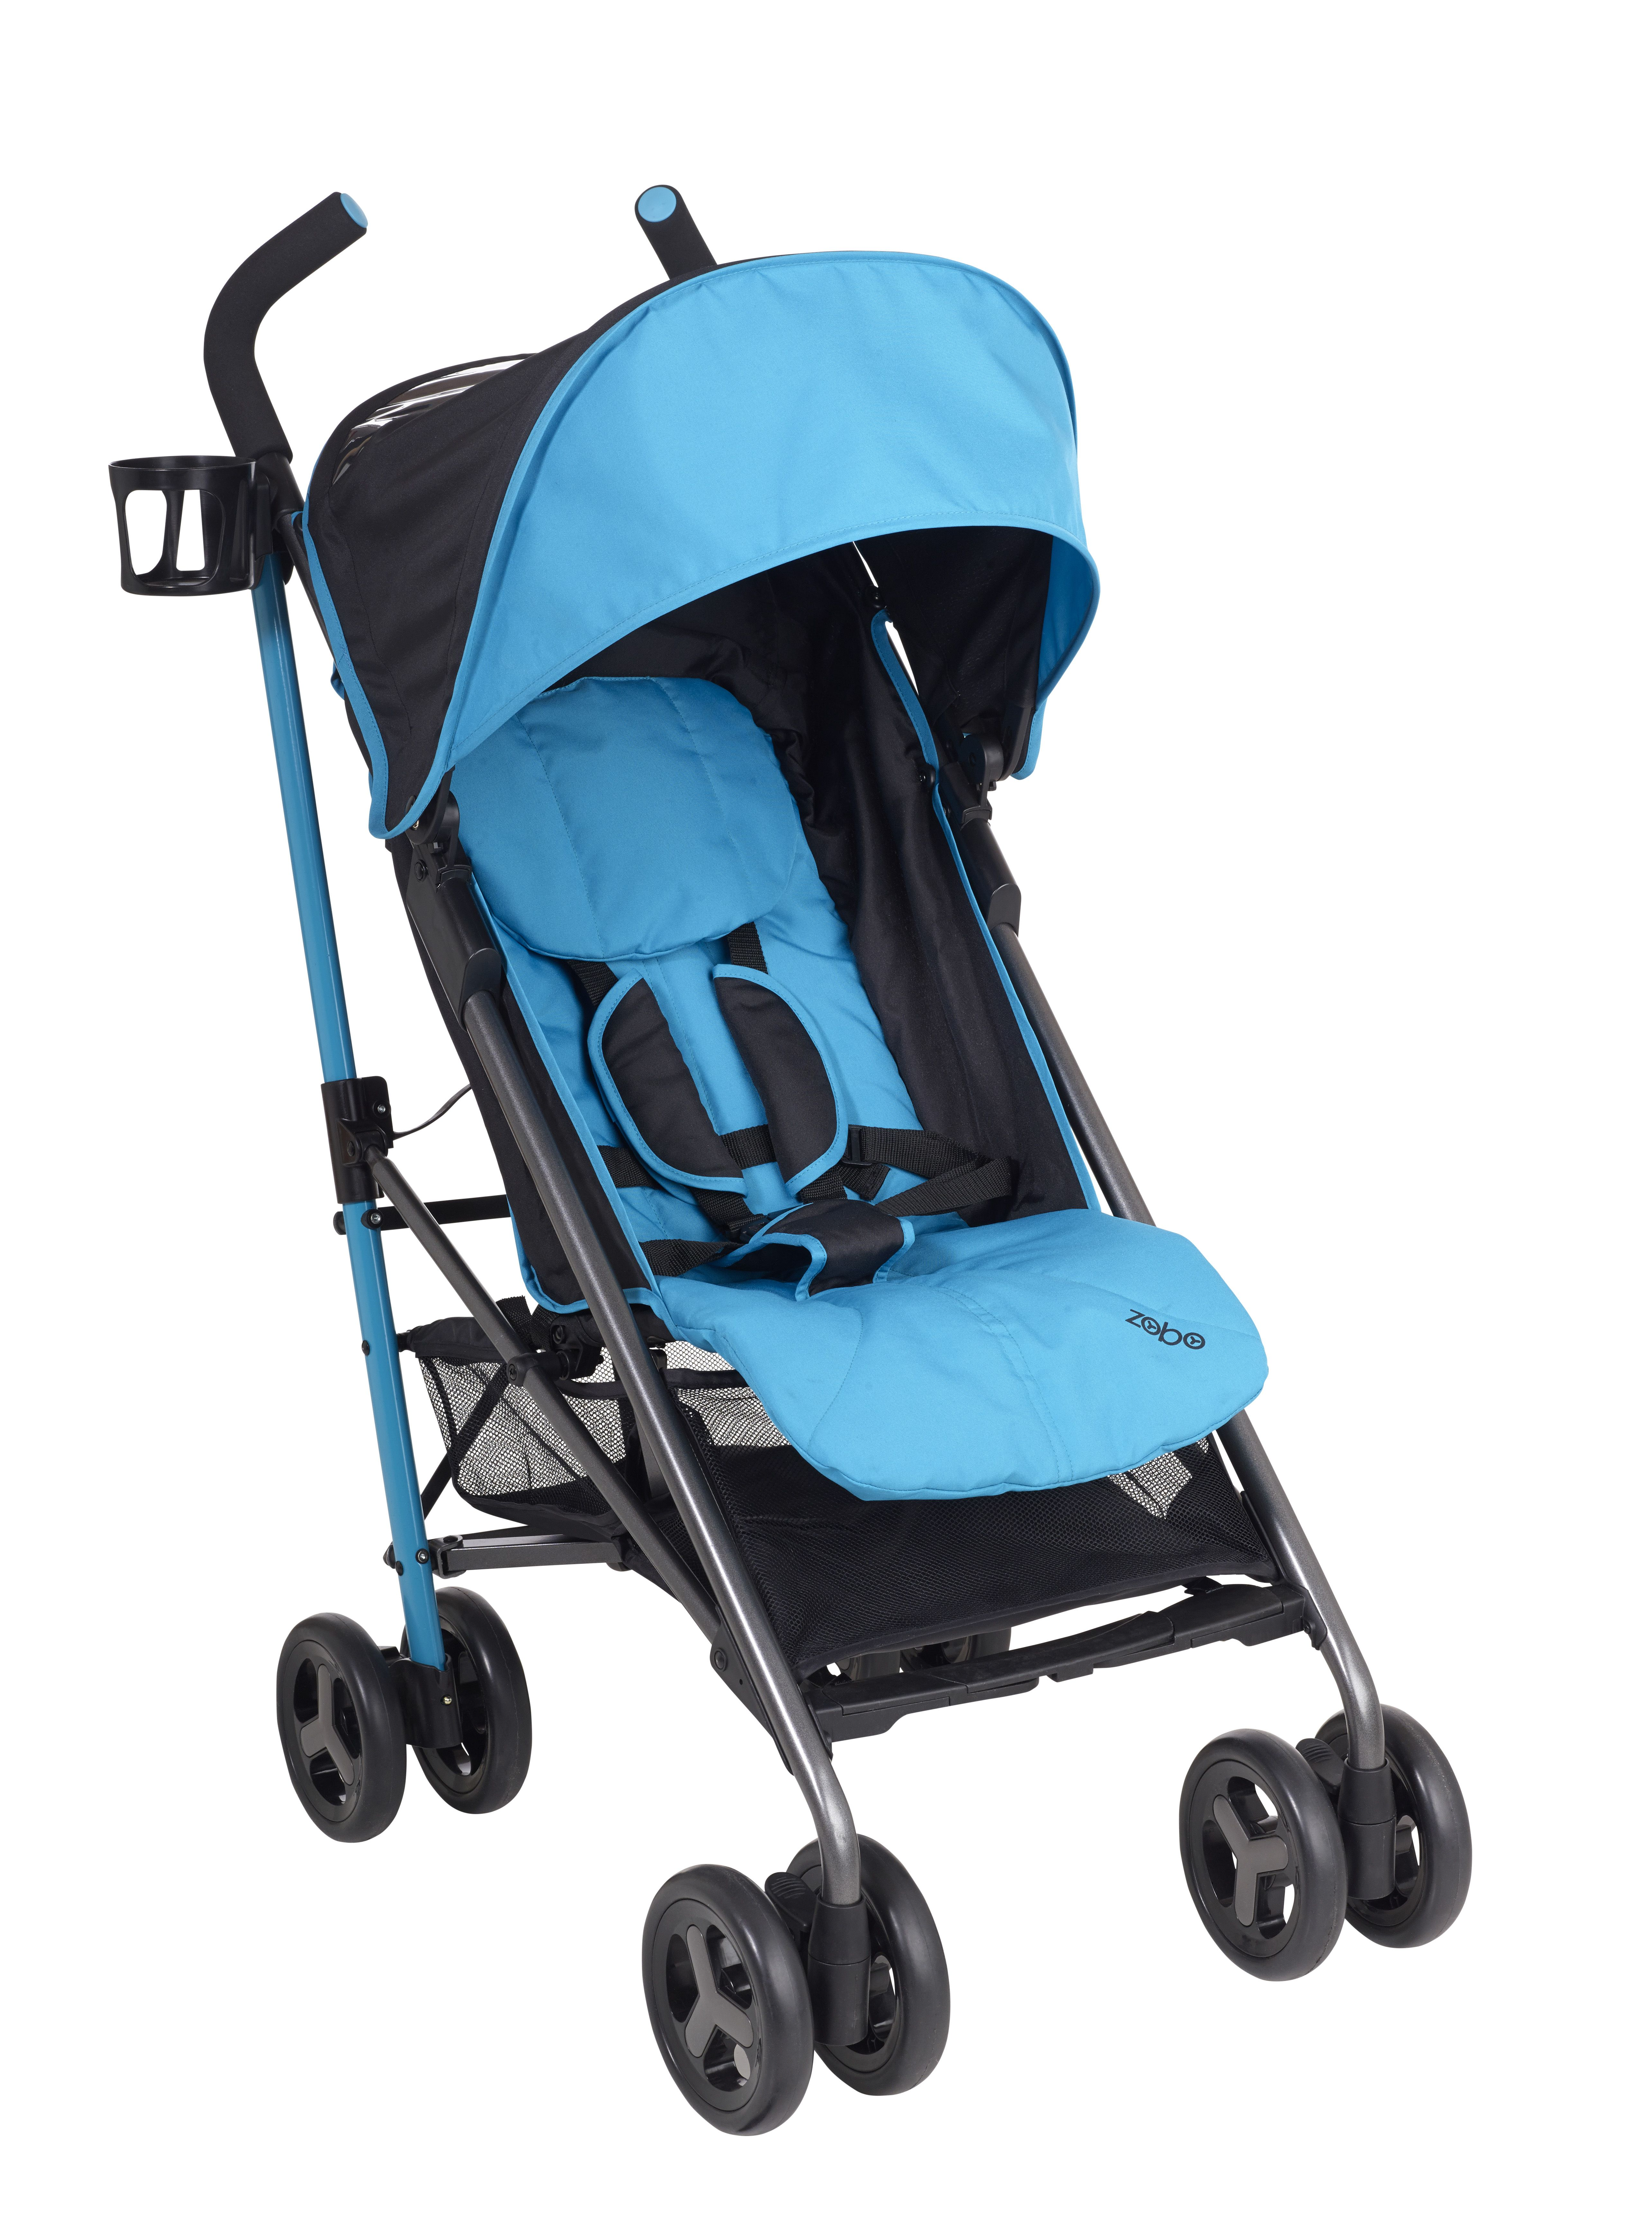 Let your little one enjoy a smooth, comfortable ride in